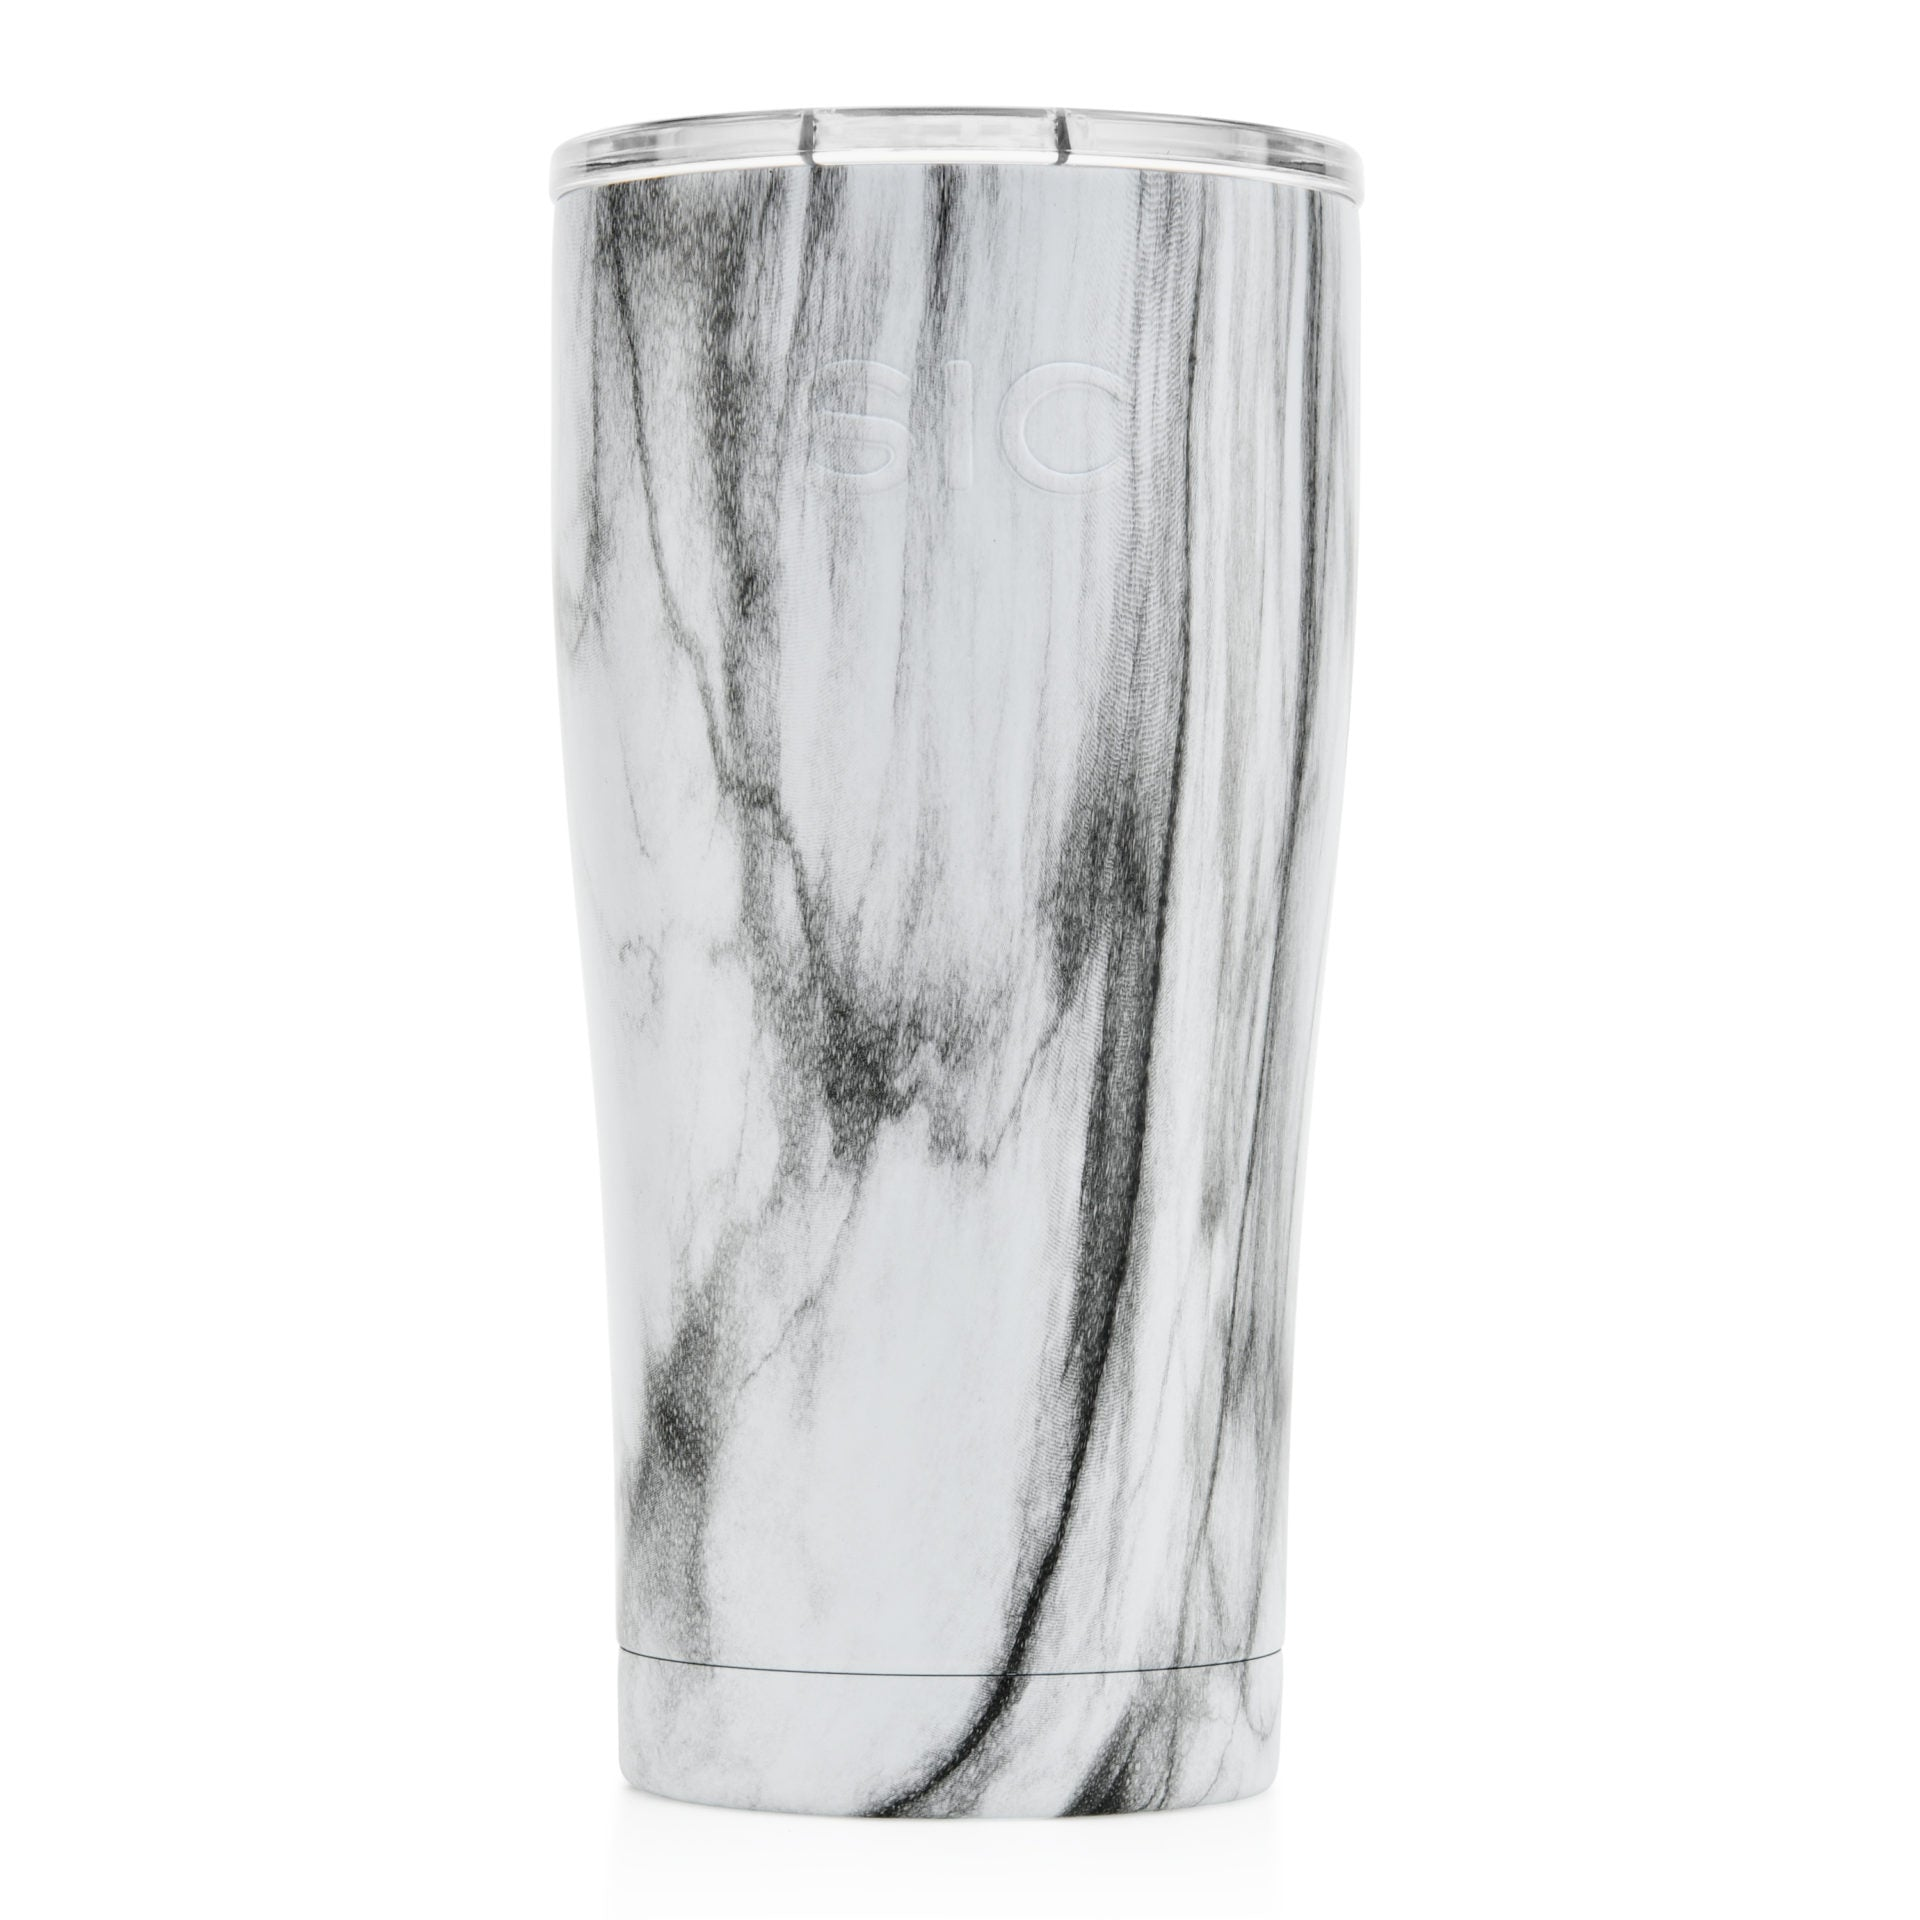 20 oz. Marble (12 Pack)